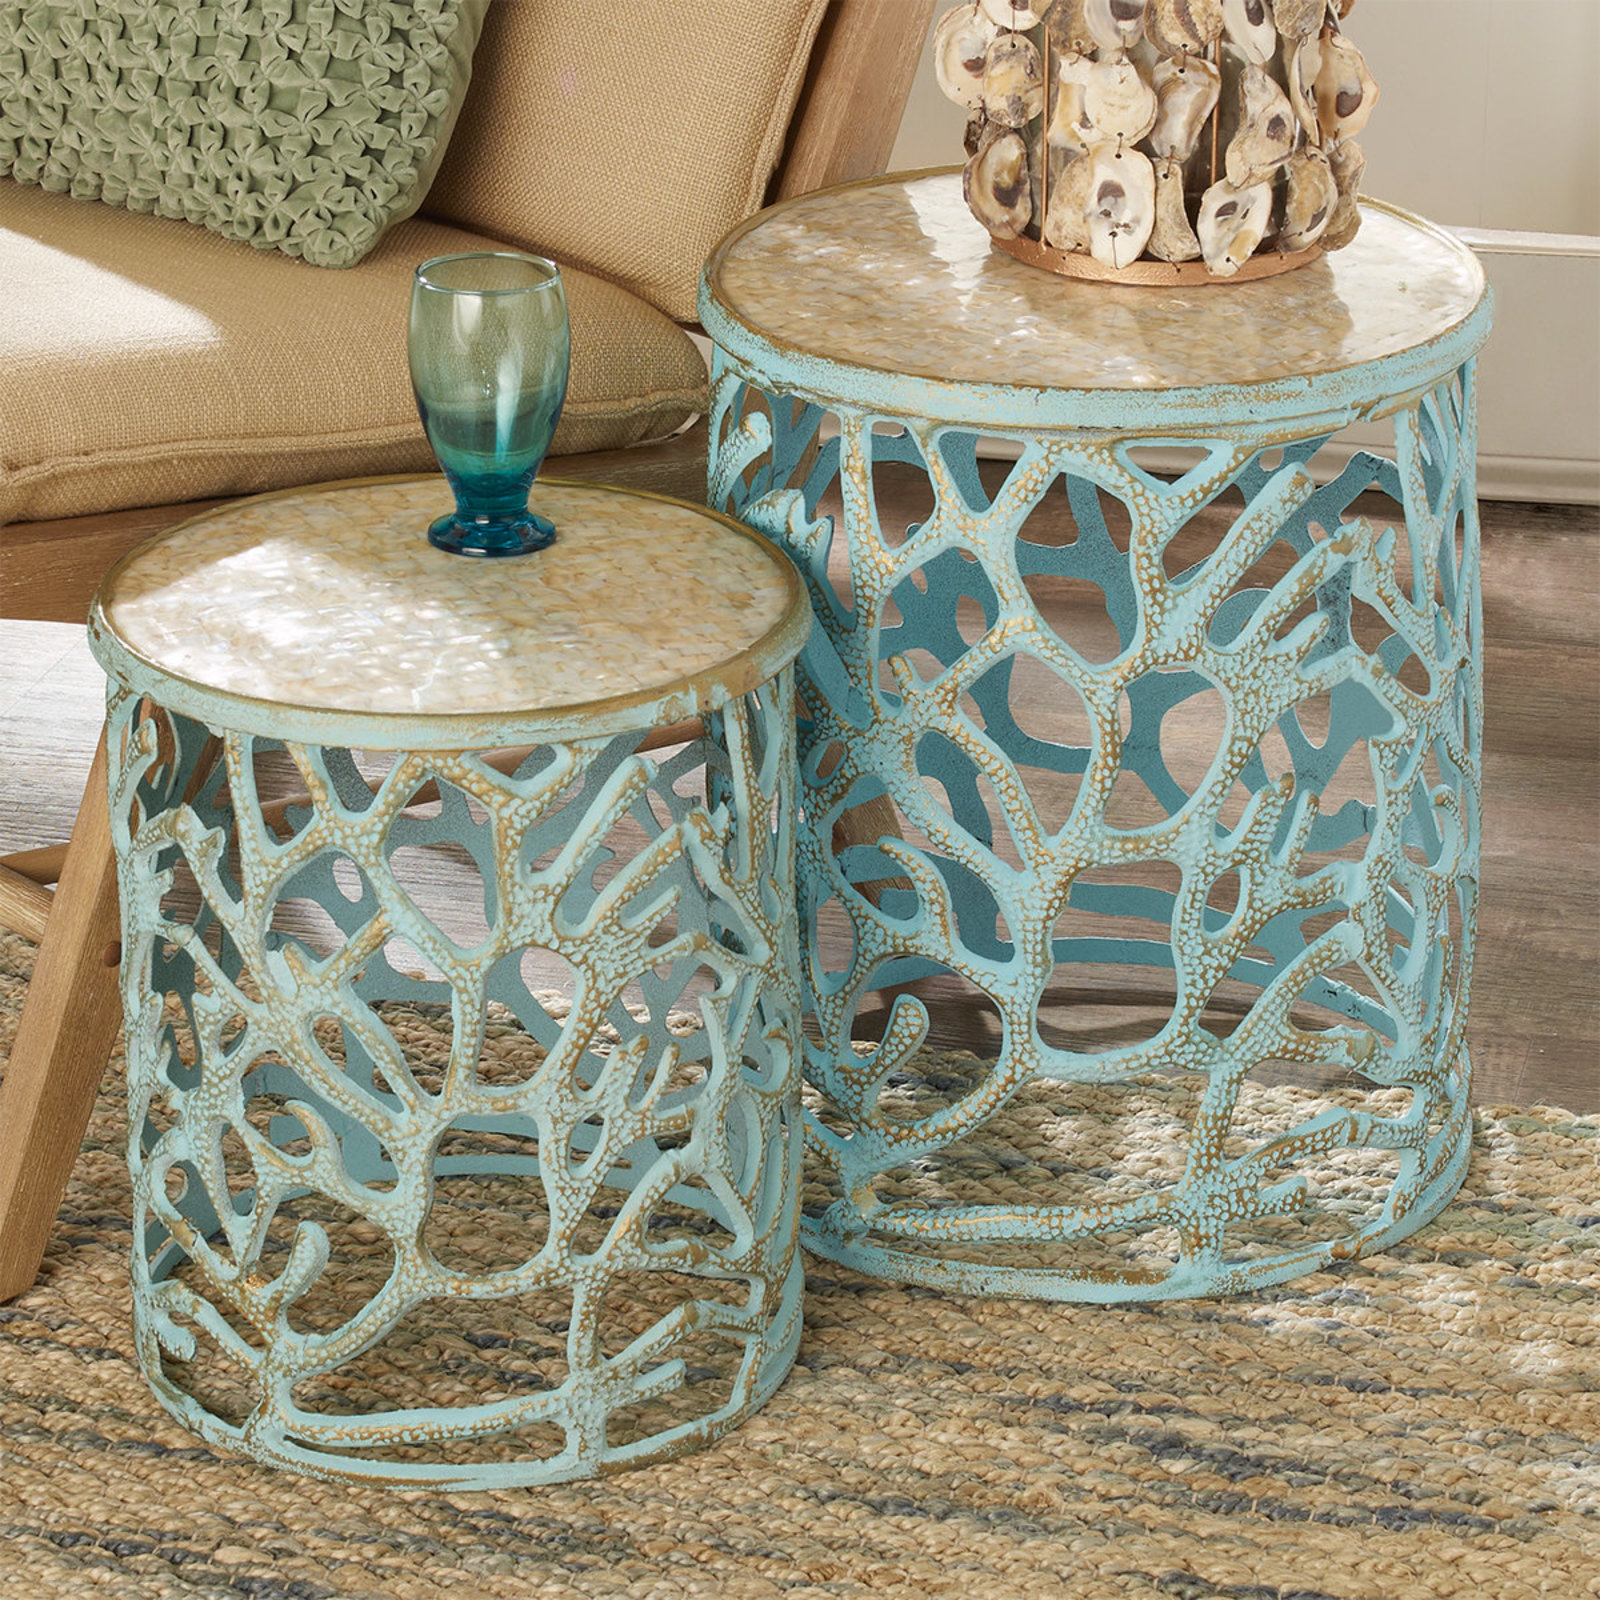 nautical coastal beach style lighting decor shades light mother pearl coral accent tables table west elm industrial storage coffee teal outdoor wicker chairs rustic plans white